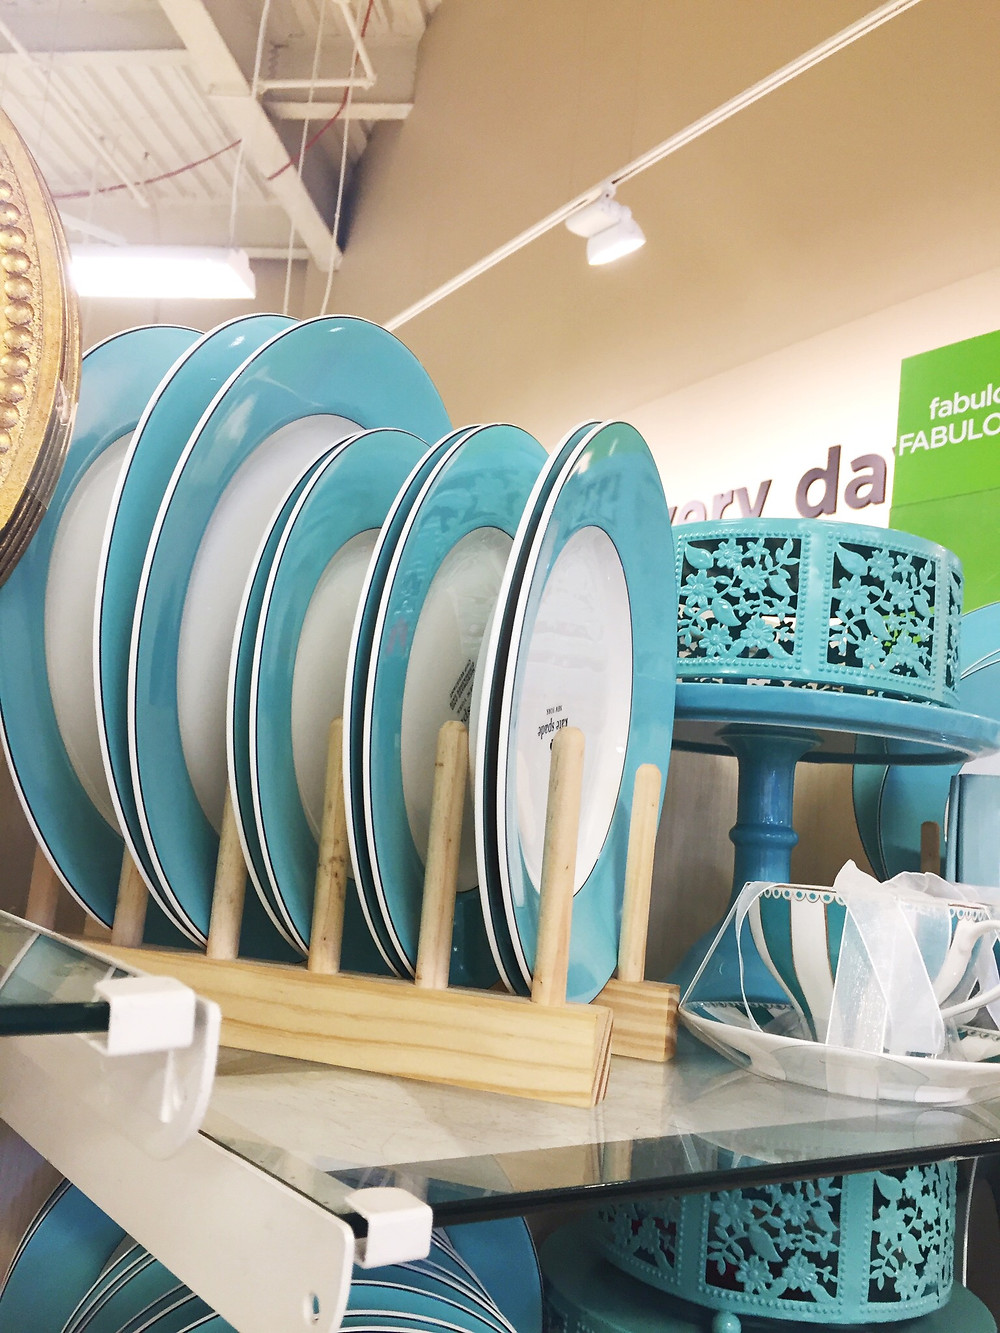 Kate Spade tiffany blue dishes